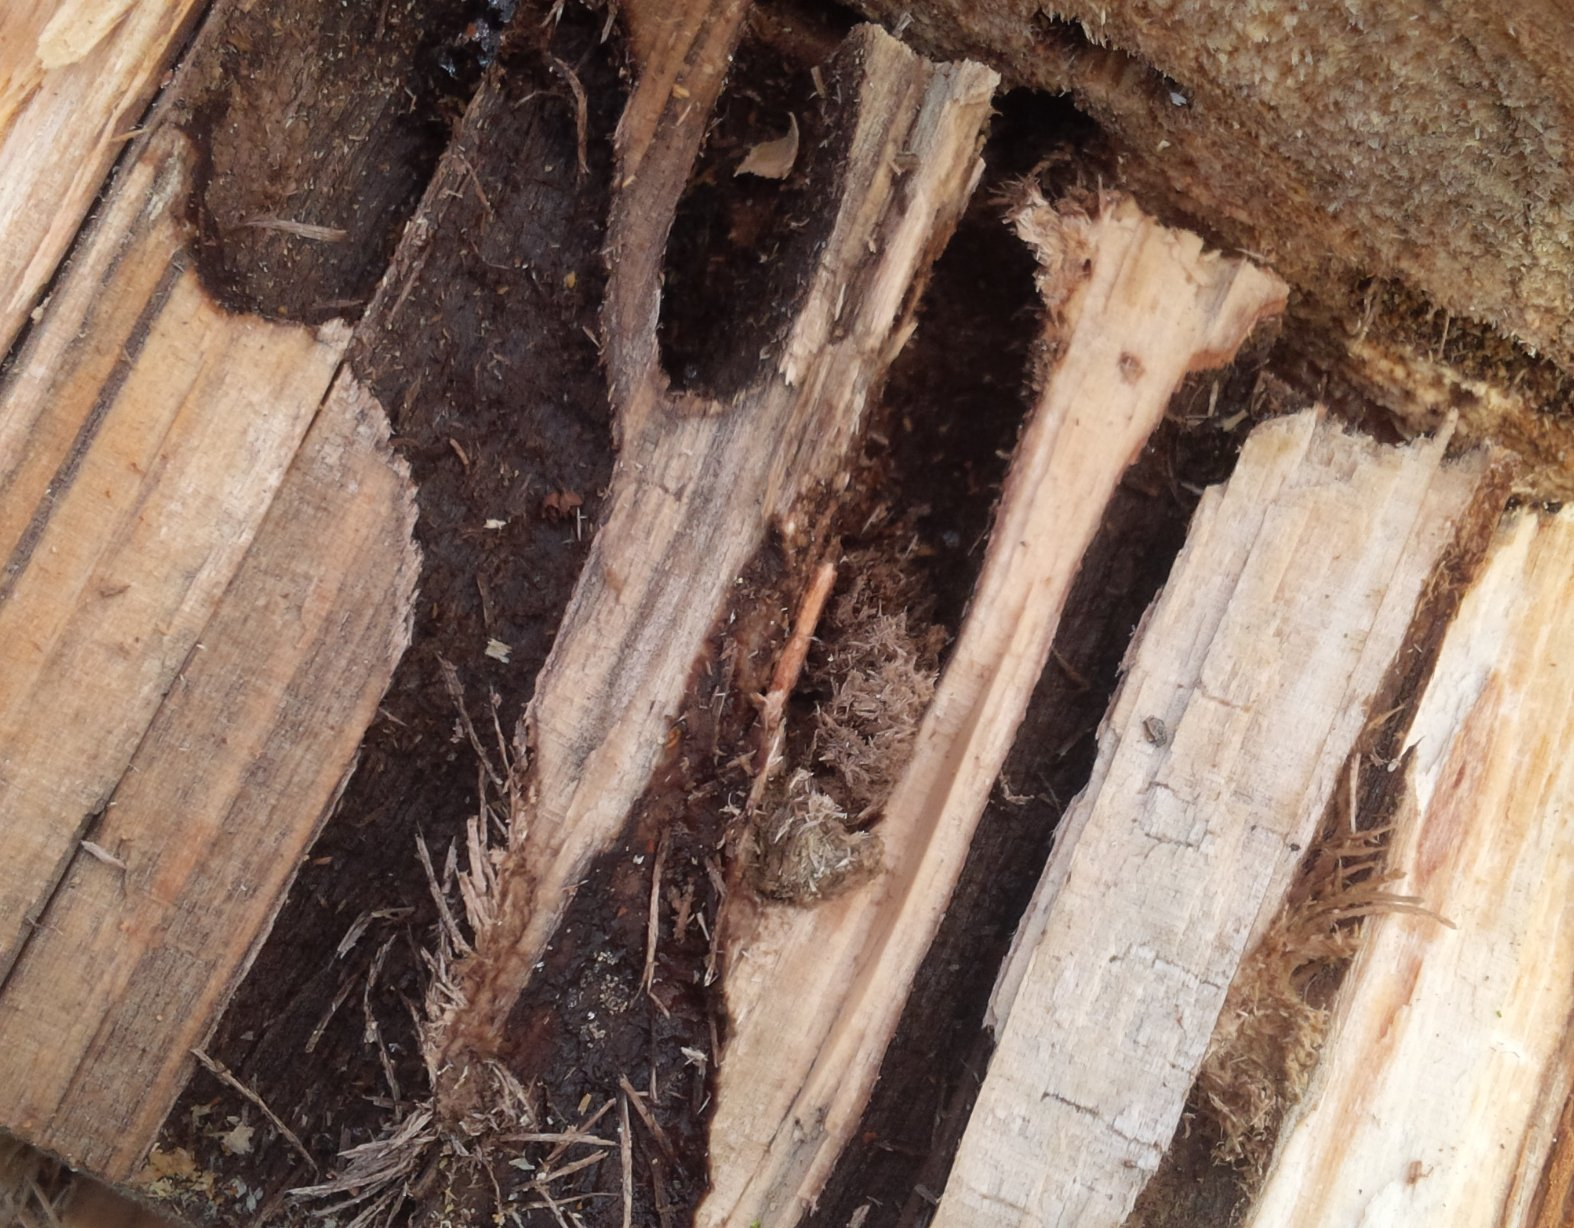 Poplar Borer Damage